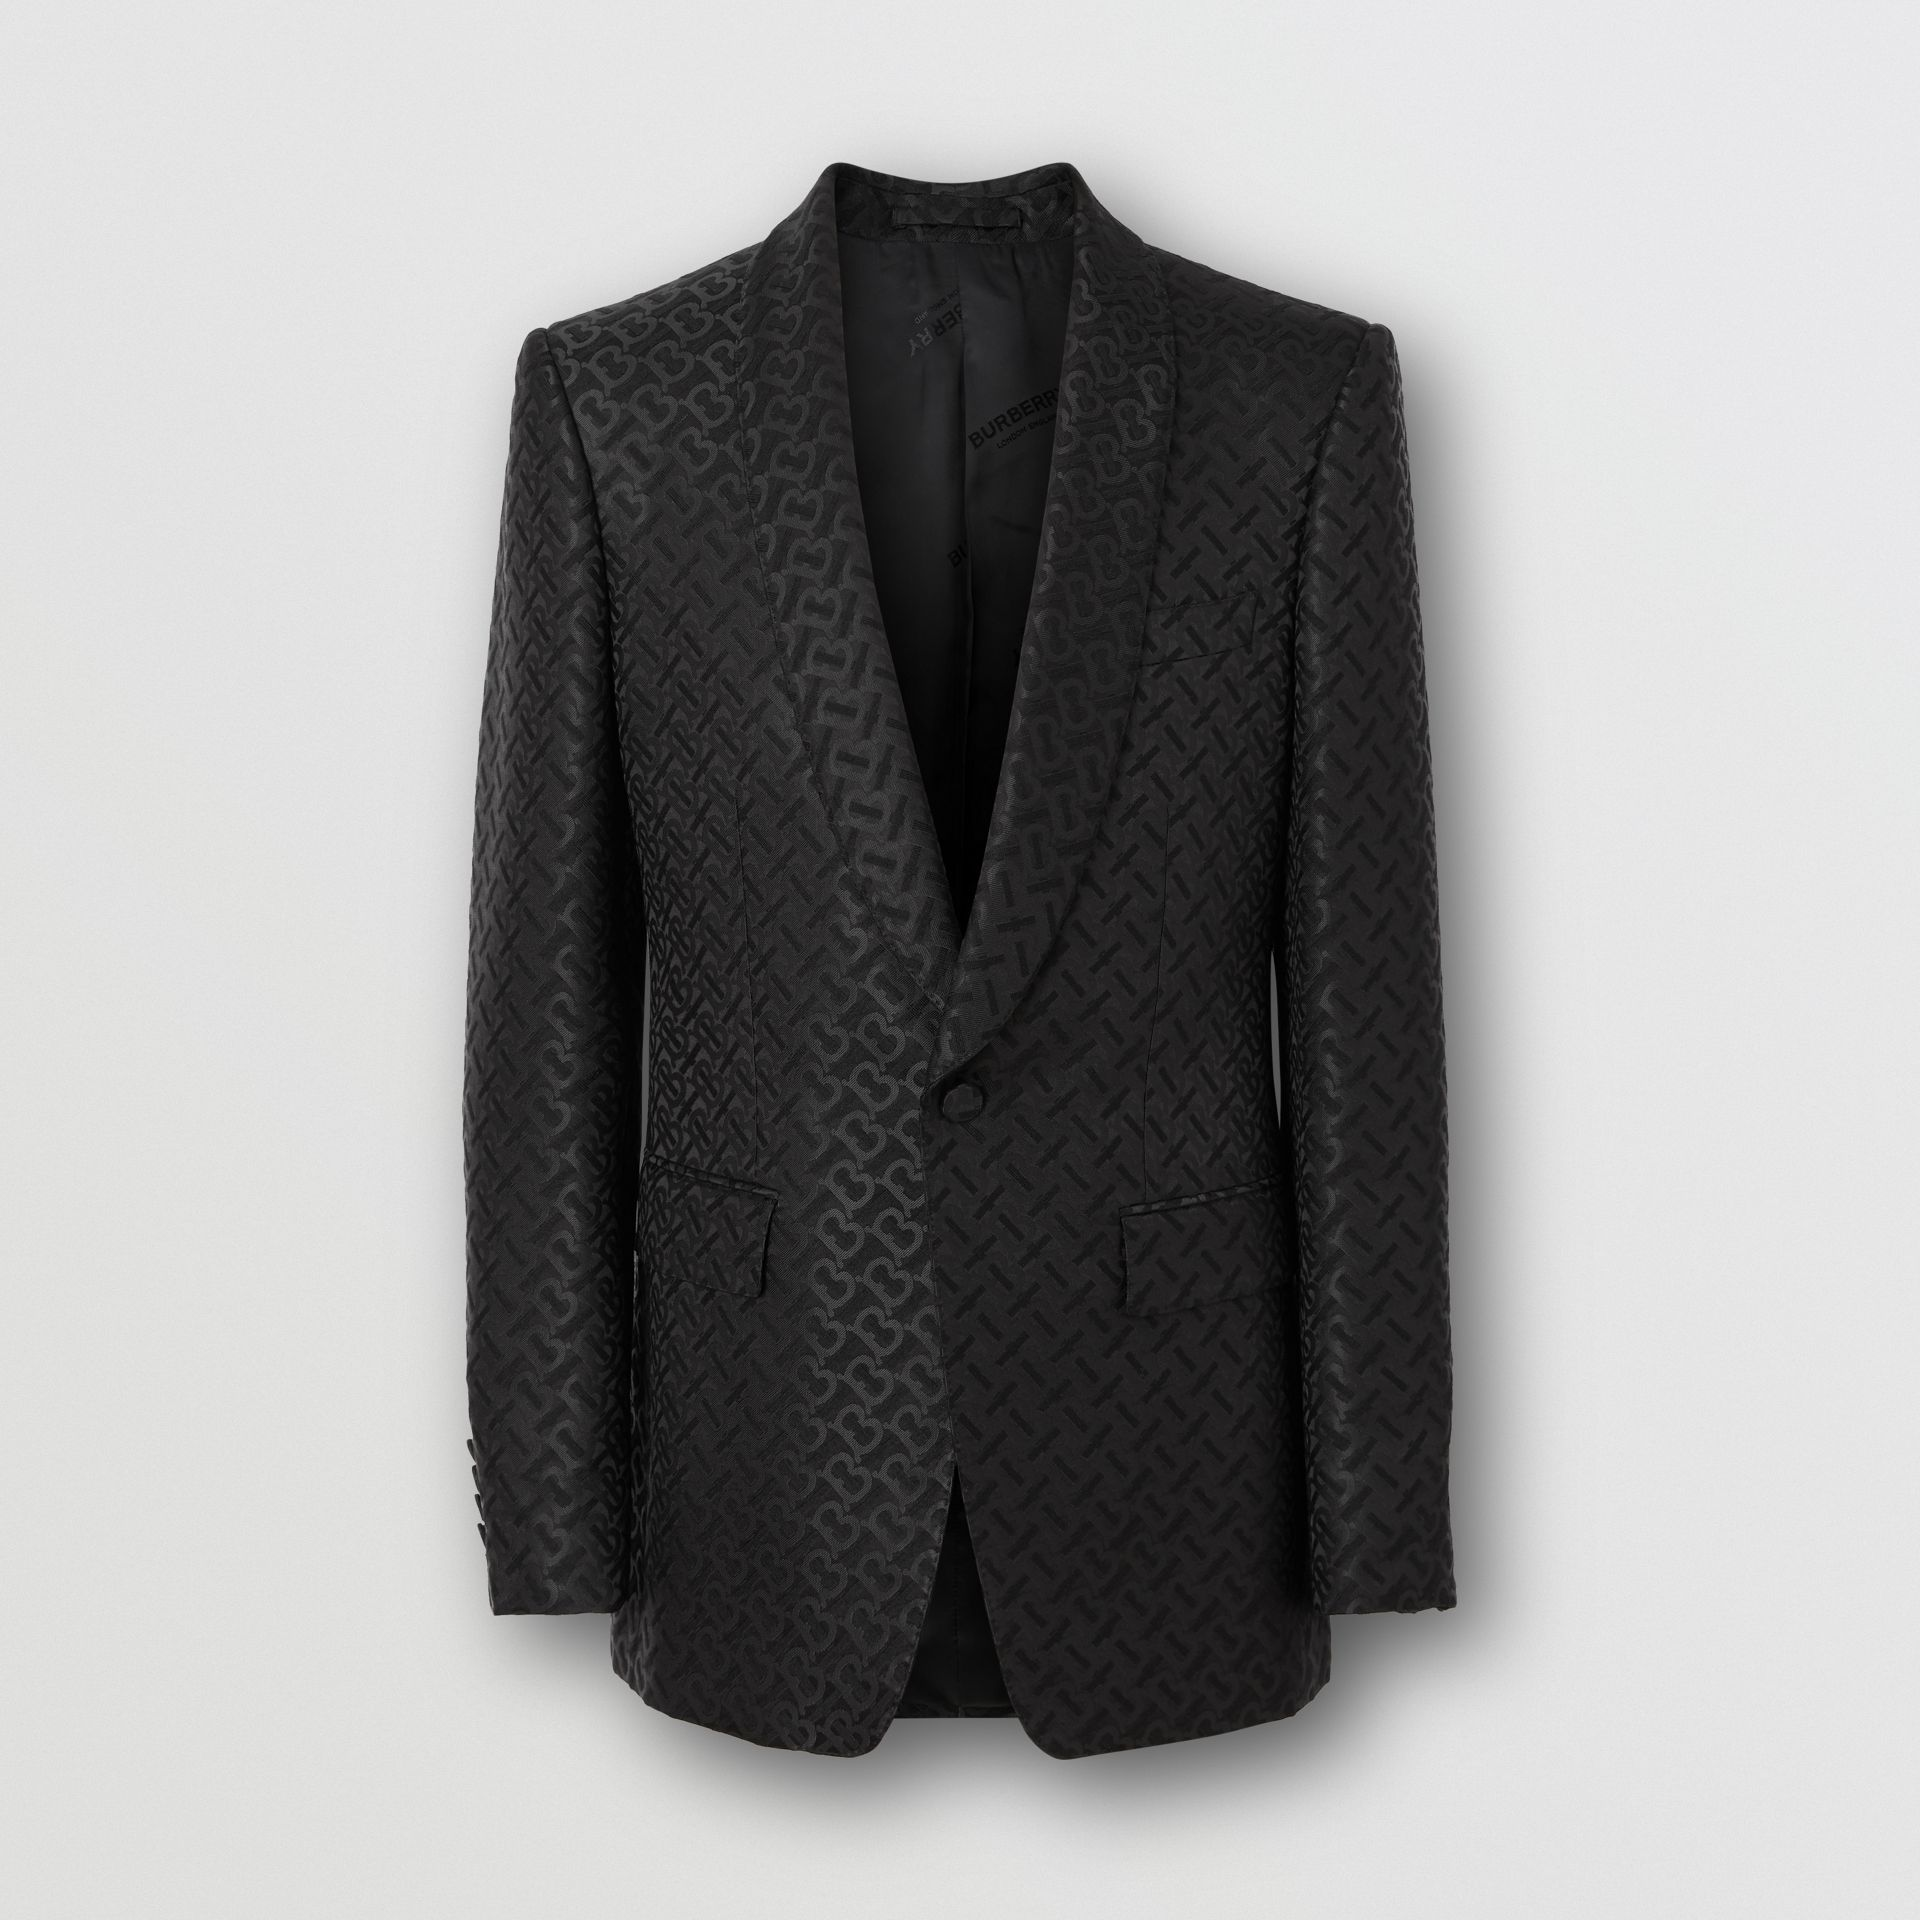 English Fit Monogram Wool Blend Jacquard Tuxedo in Black - Men | Burberry - gallery image 3